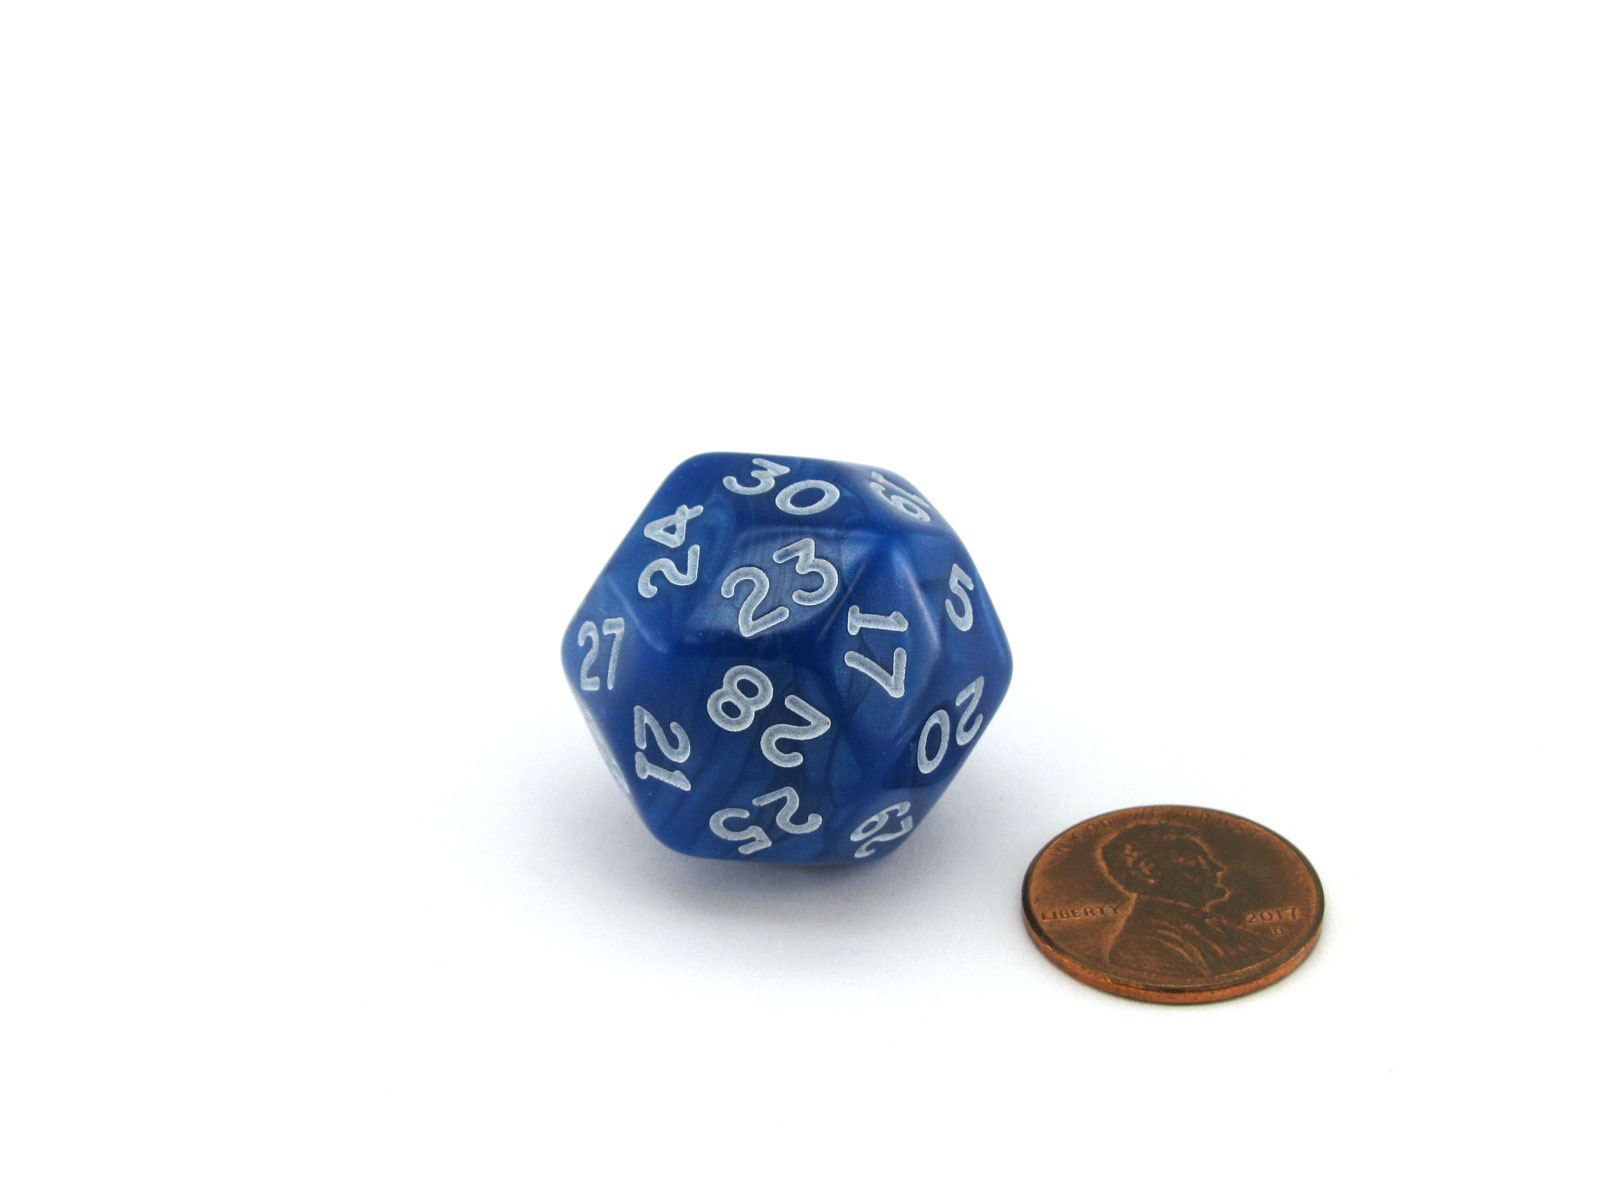 Pearlescent Triantakohedron D30 30 Sided 25mm Chessex Dice - Blue with White